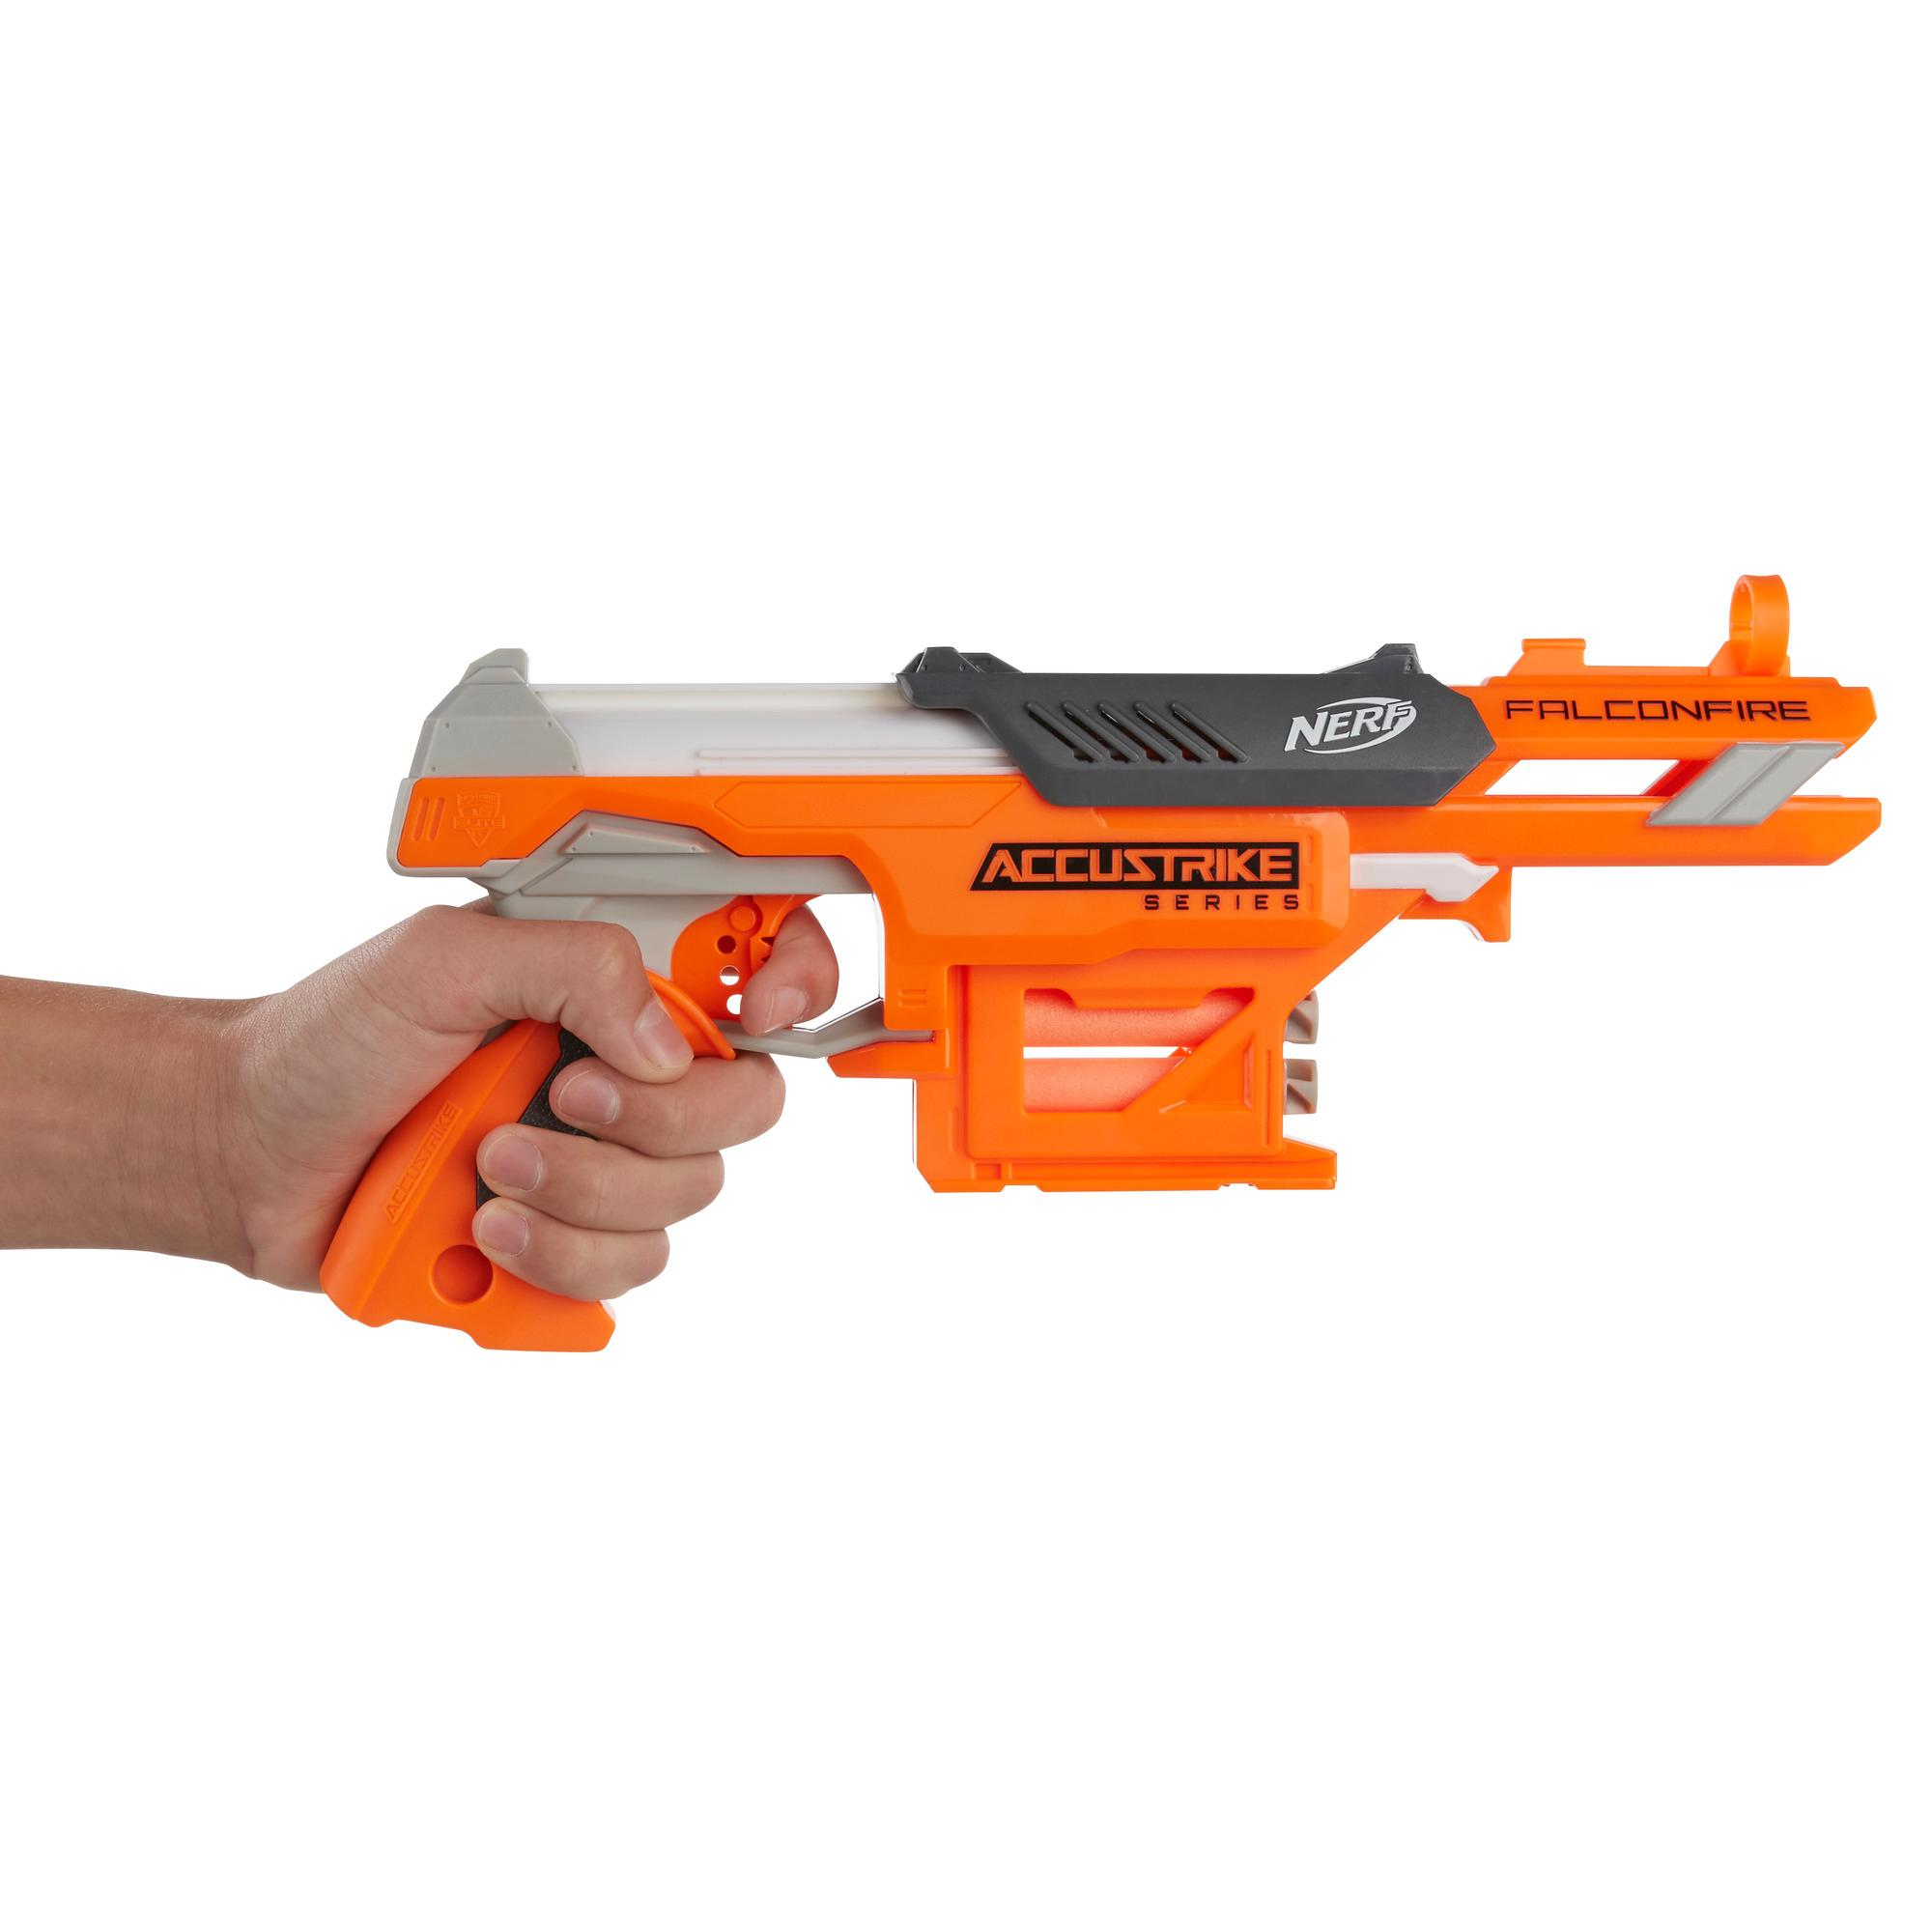 NERF AccuStrike FalconFire